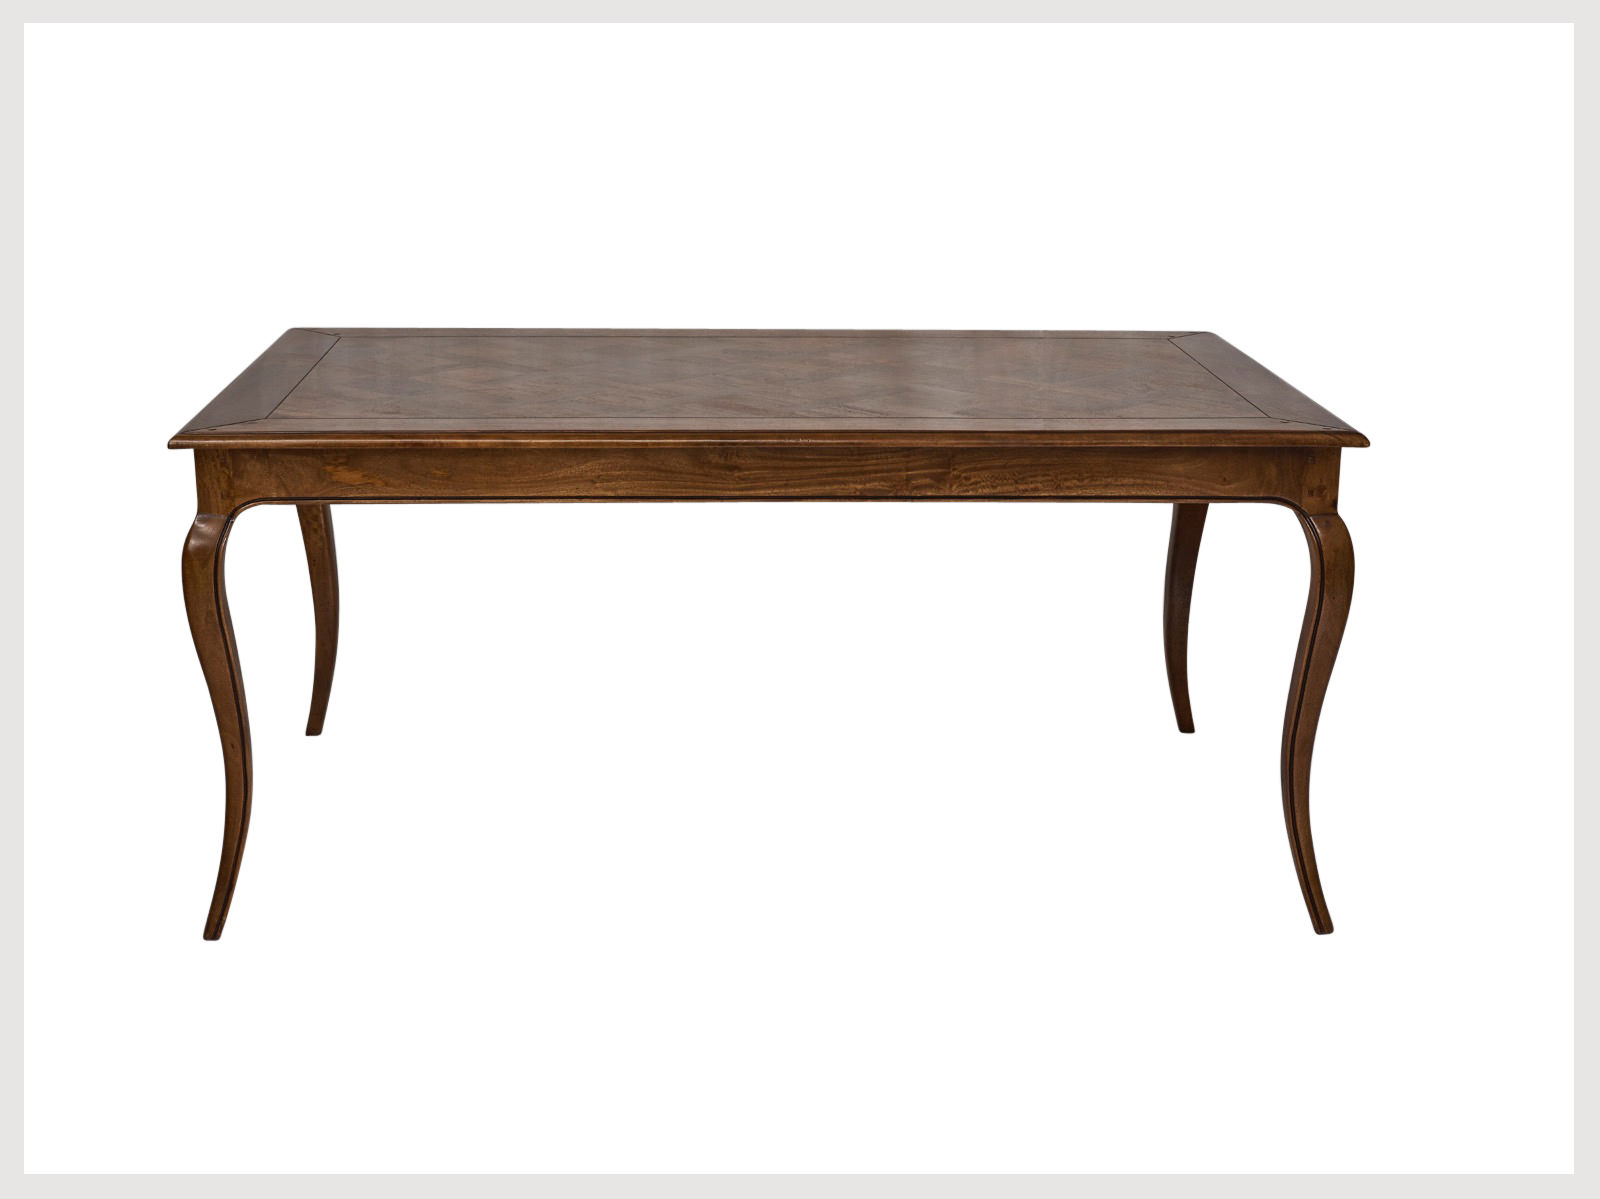 French Provincial Style 6 8 Seater Dining Table In Fruitwood Finish L1